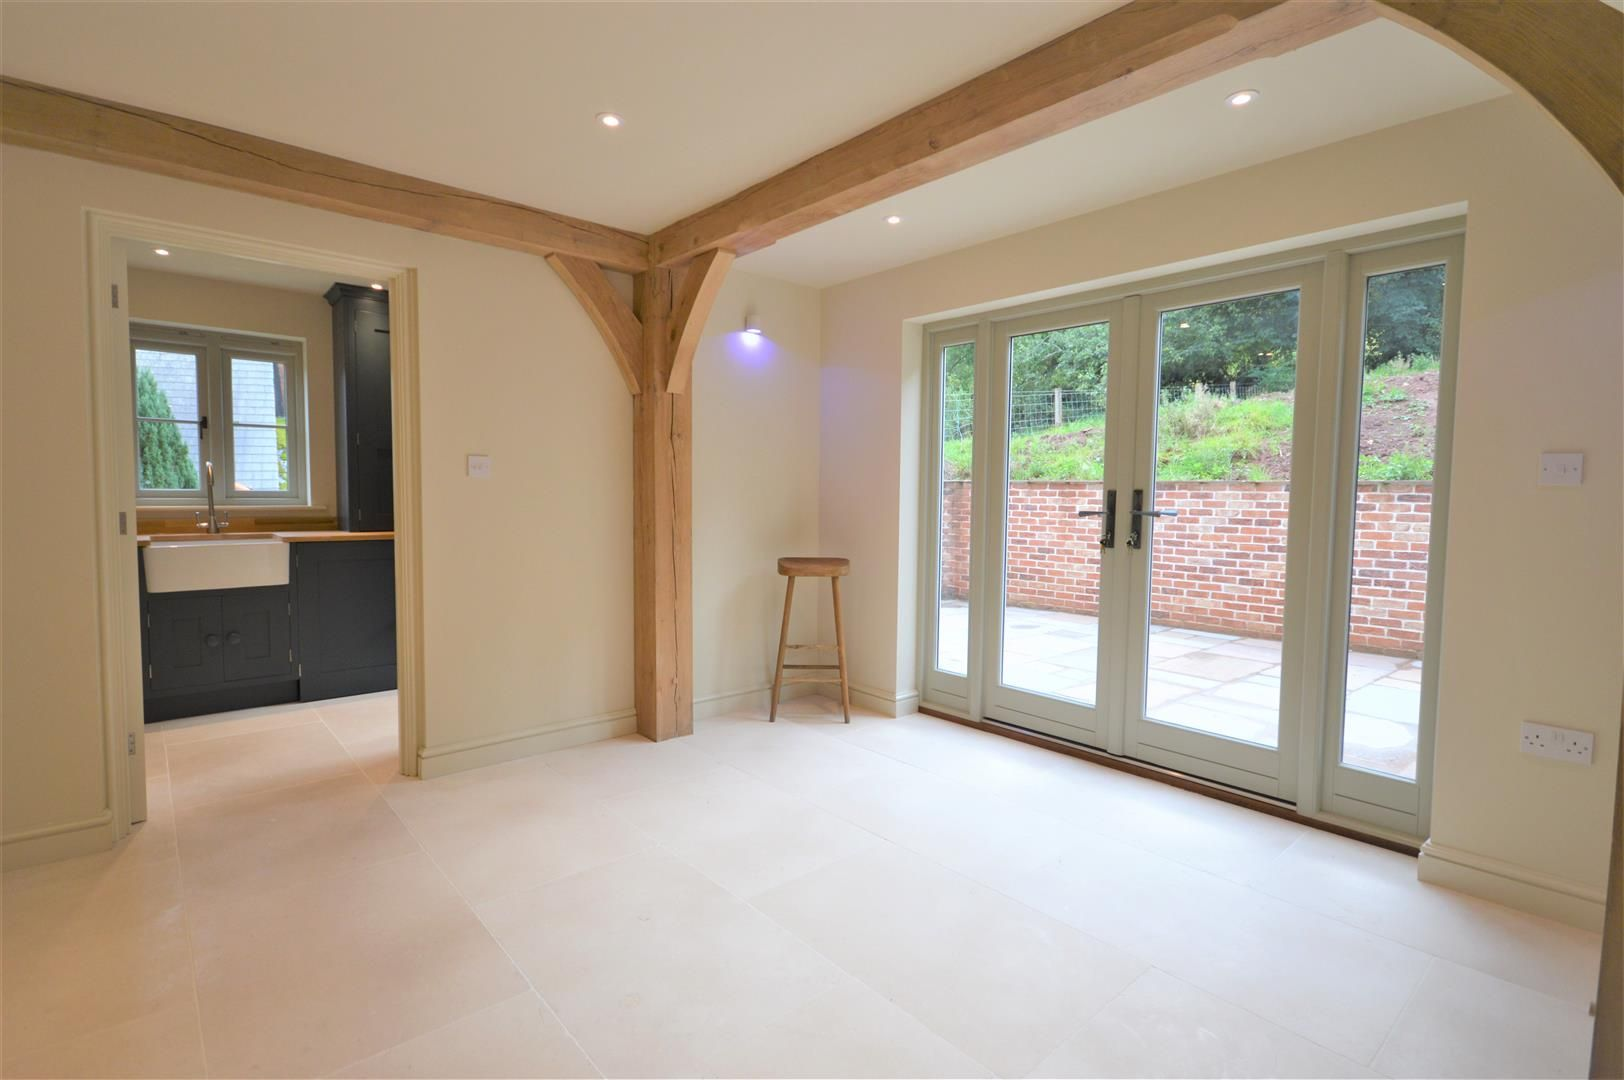 3 bed detached for sale in Dilwyn 5